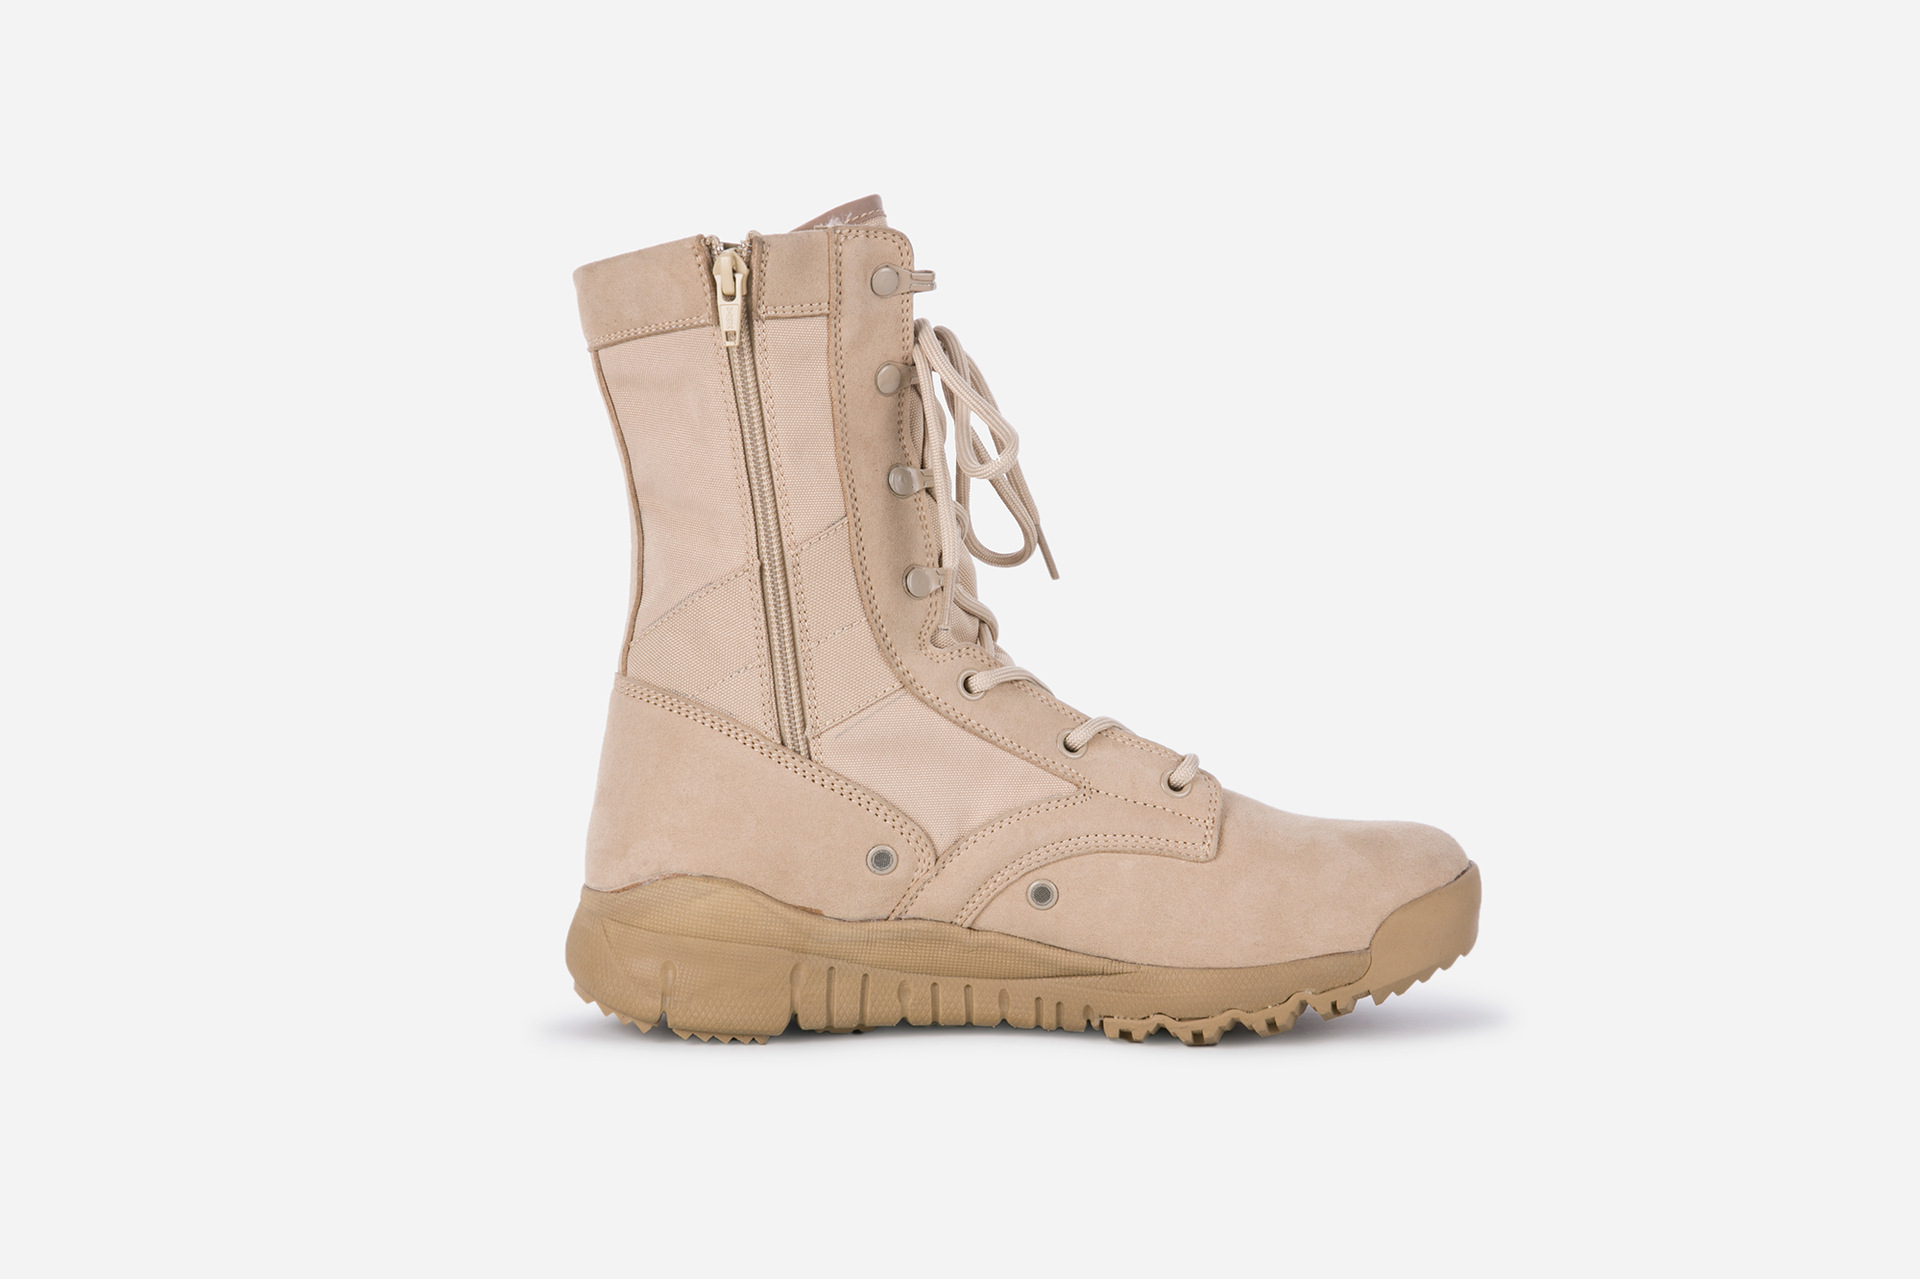 Combat Boots Ultra-Light-Combat Boots Side With Zipper Hight-top Men's Combat Boots Desert Boots Sandy Color Boots